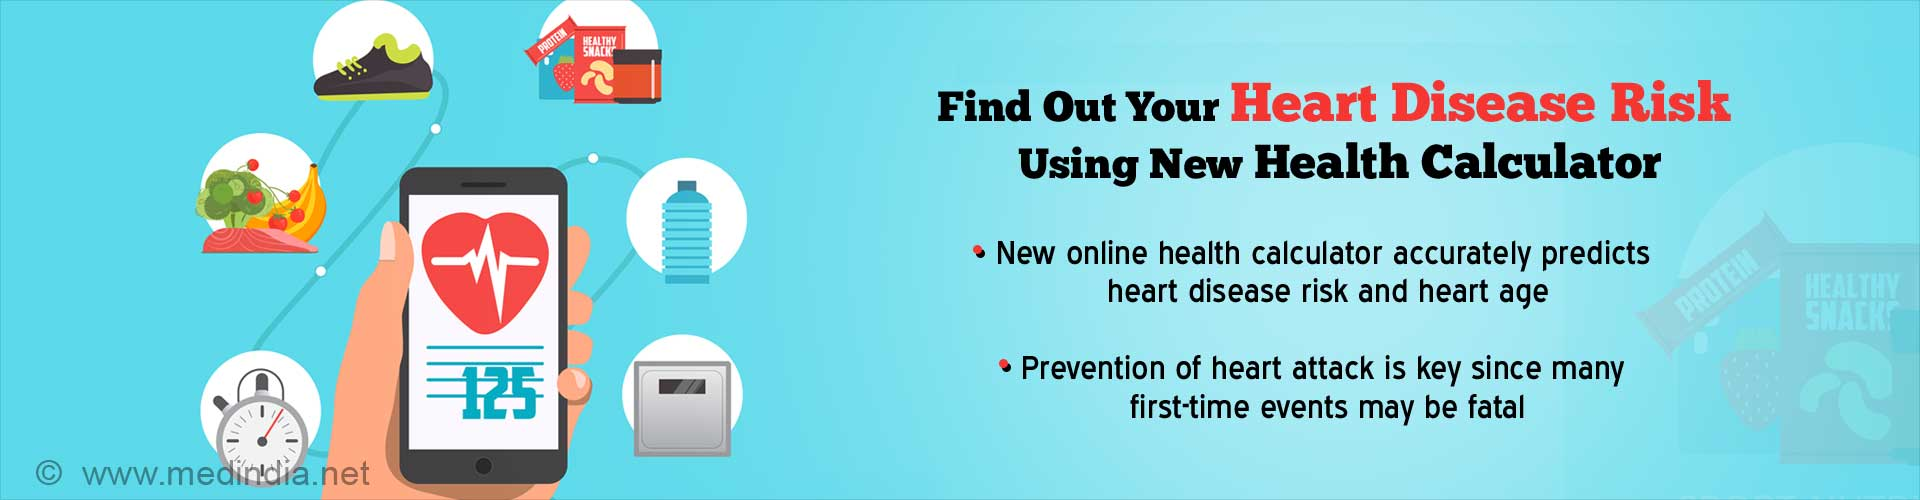 New Online Health Calculator Tool Can Predict Heart Disease Risk